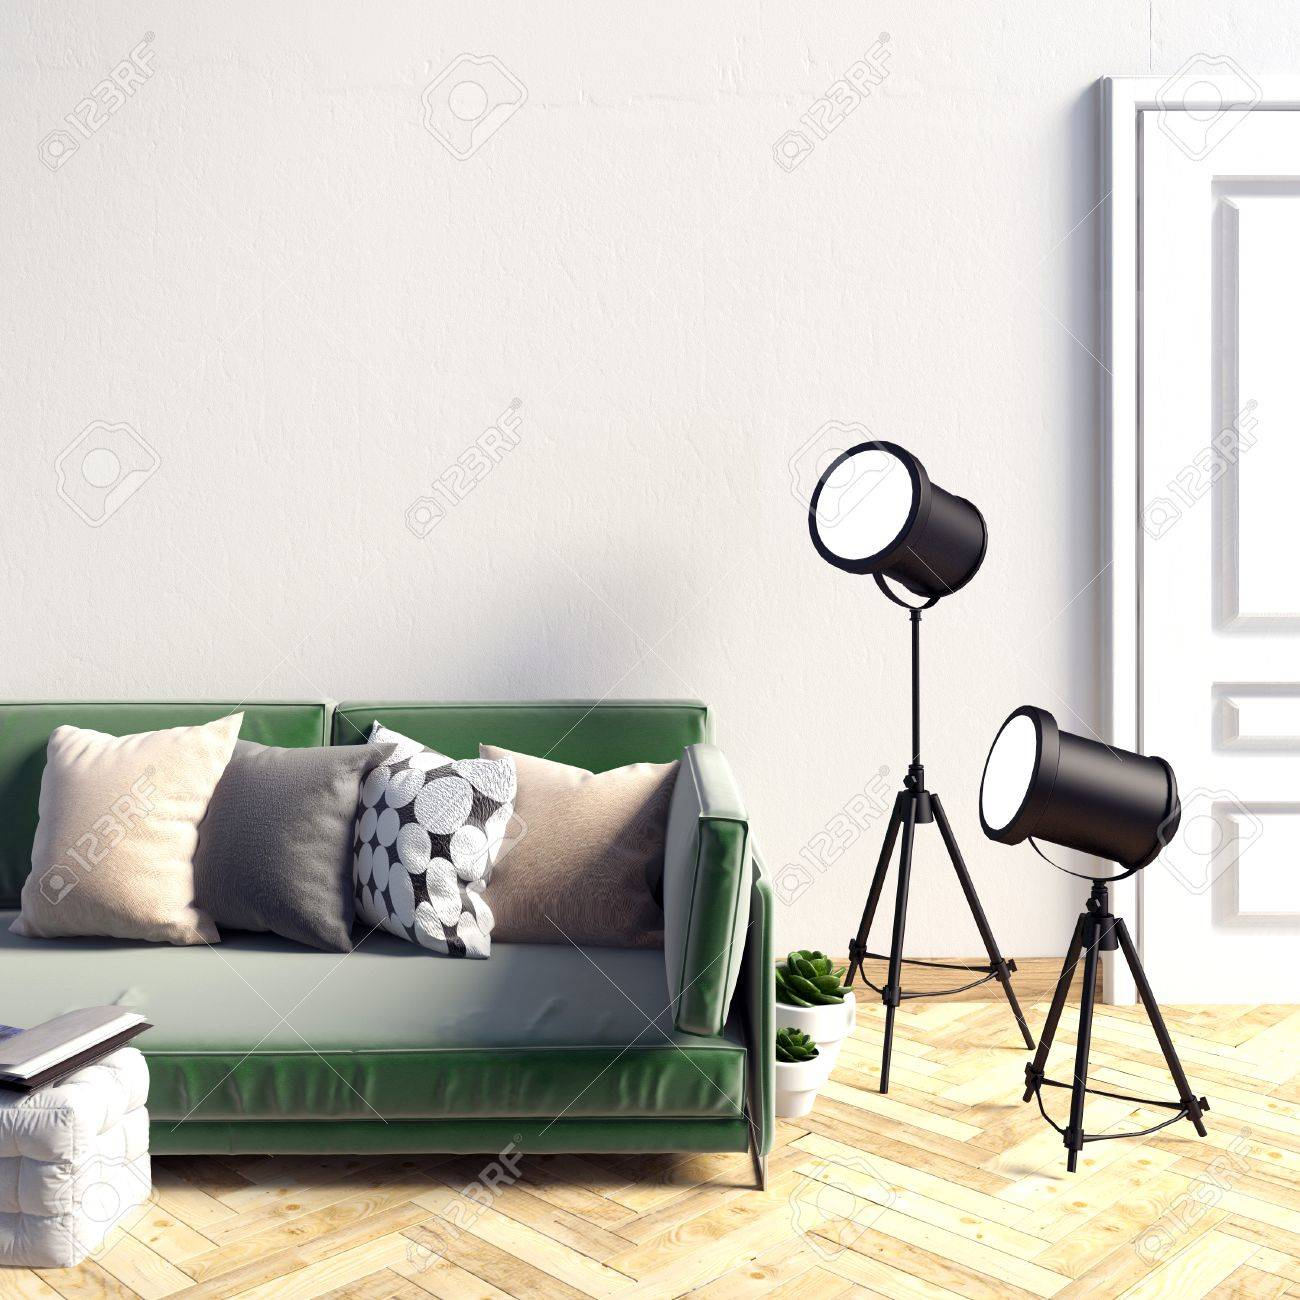 Mock Up Wall In Interior With Sofa Living Room Resting Place Modern Style